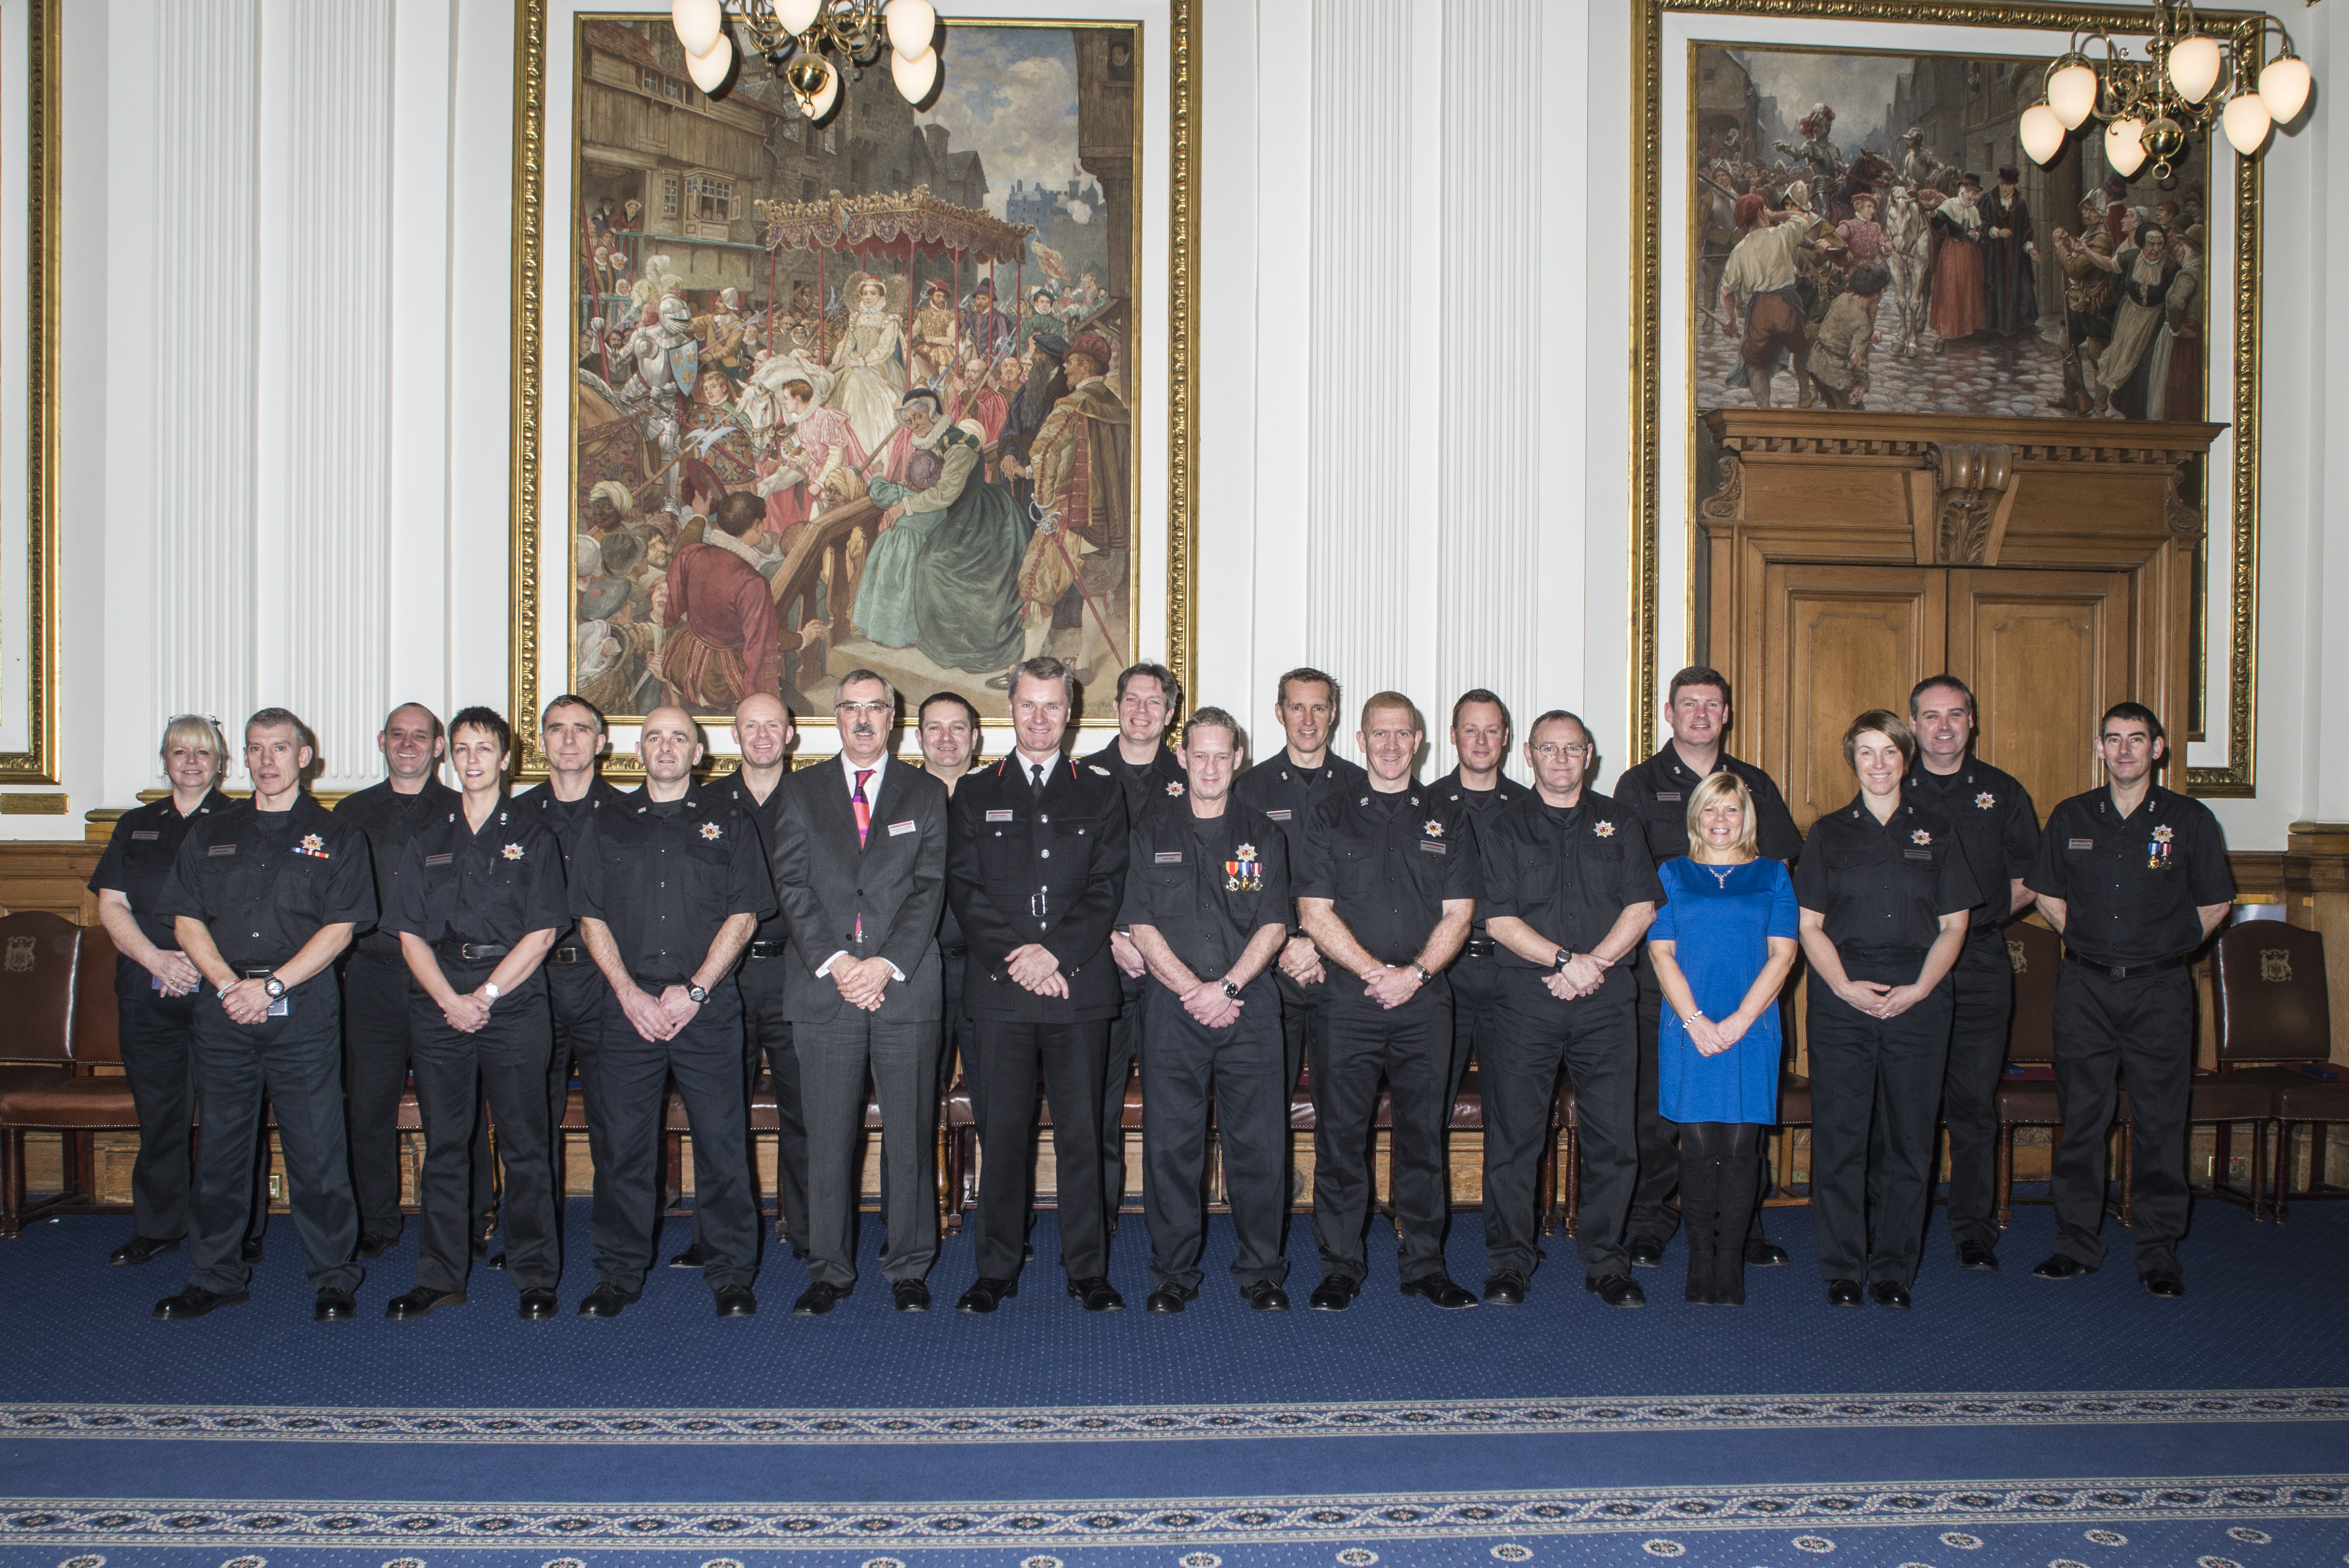 Long Service Medals awarded to officers in East of Scotland